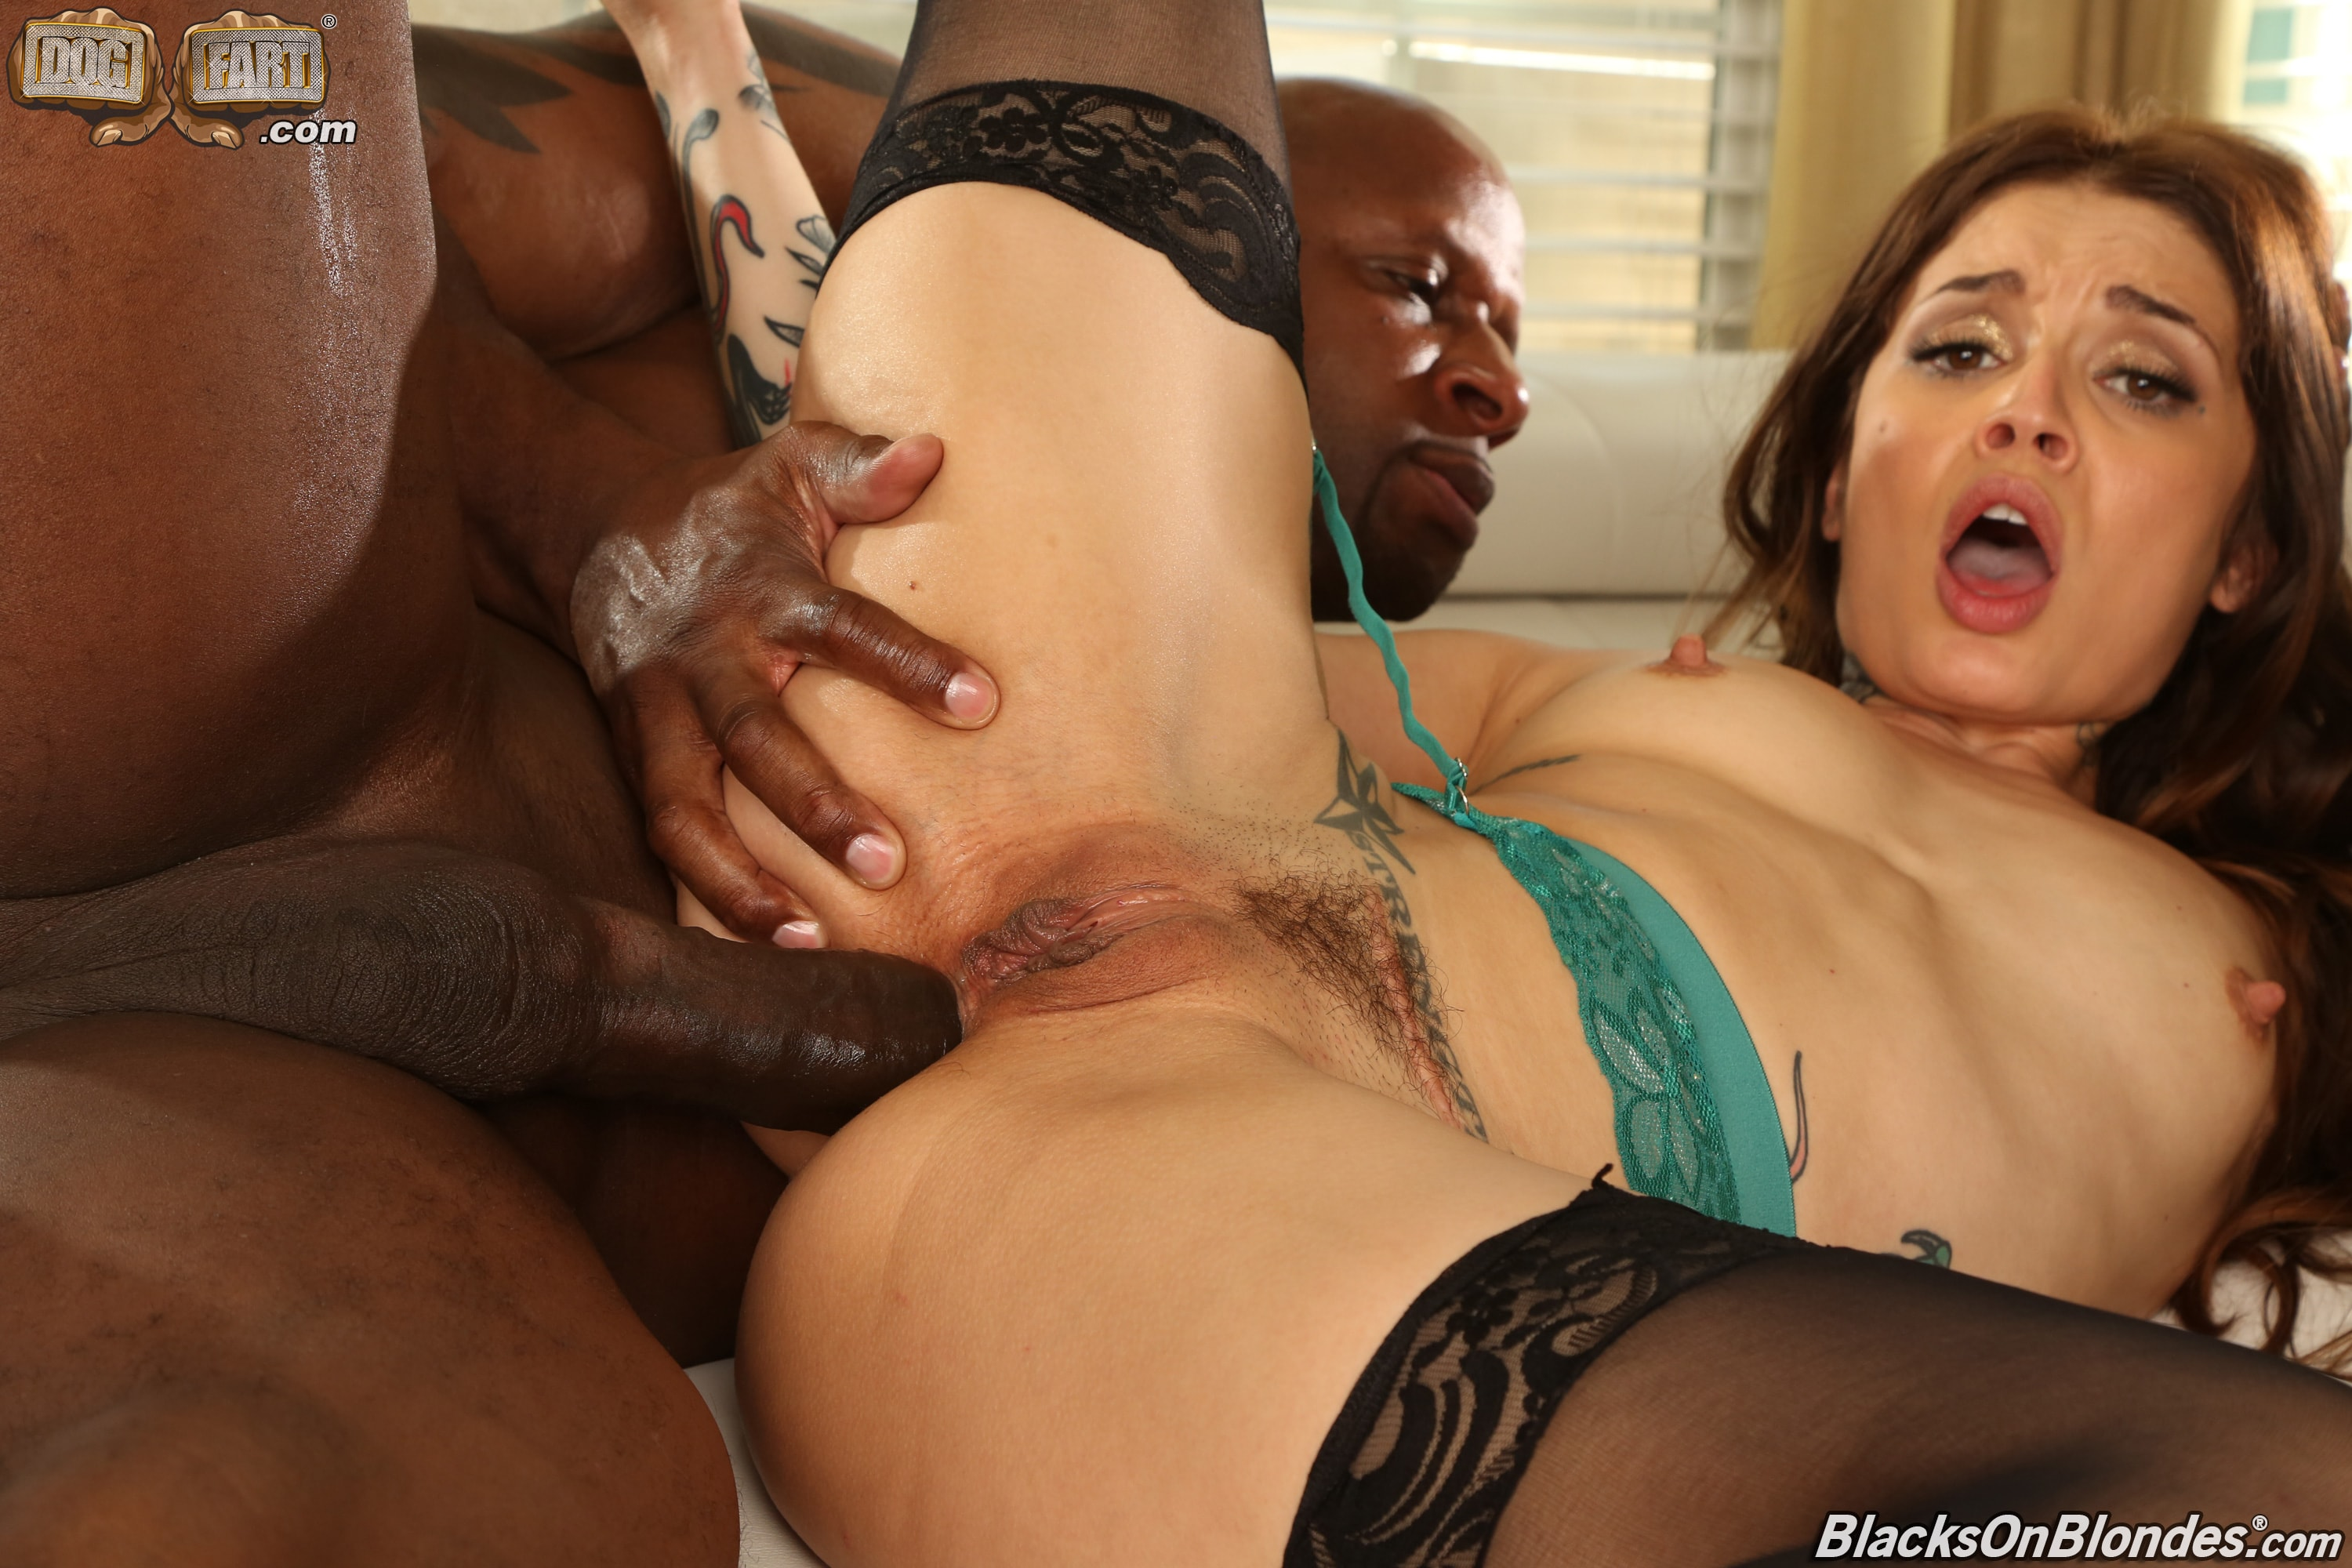 Dogfart '- Blacks On Blondes - Scene 2' starring Vanessa Vega (Photo 27)